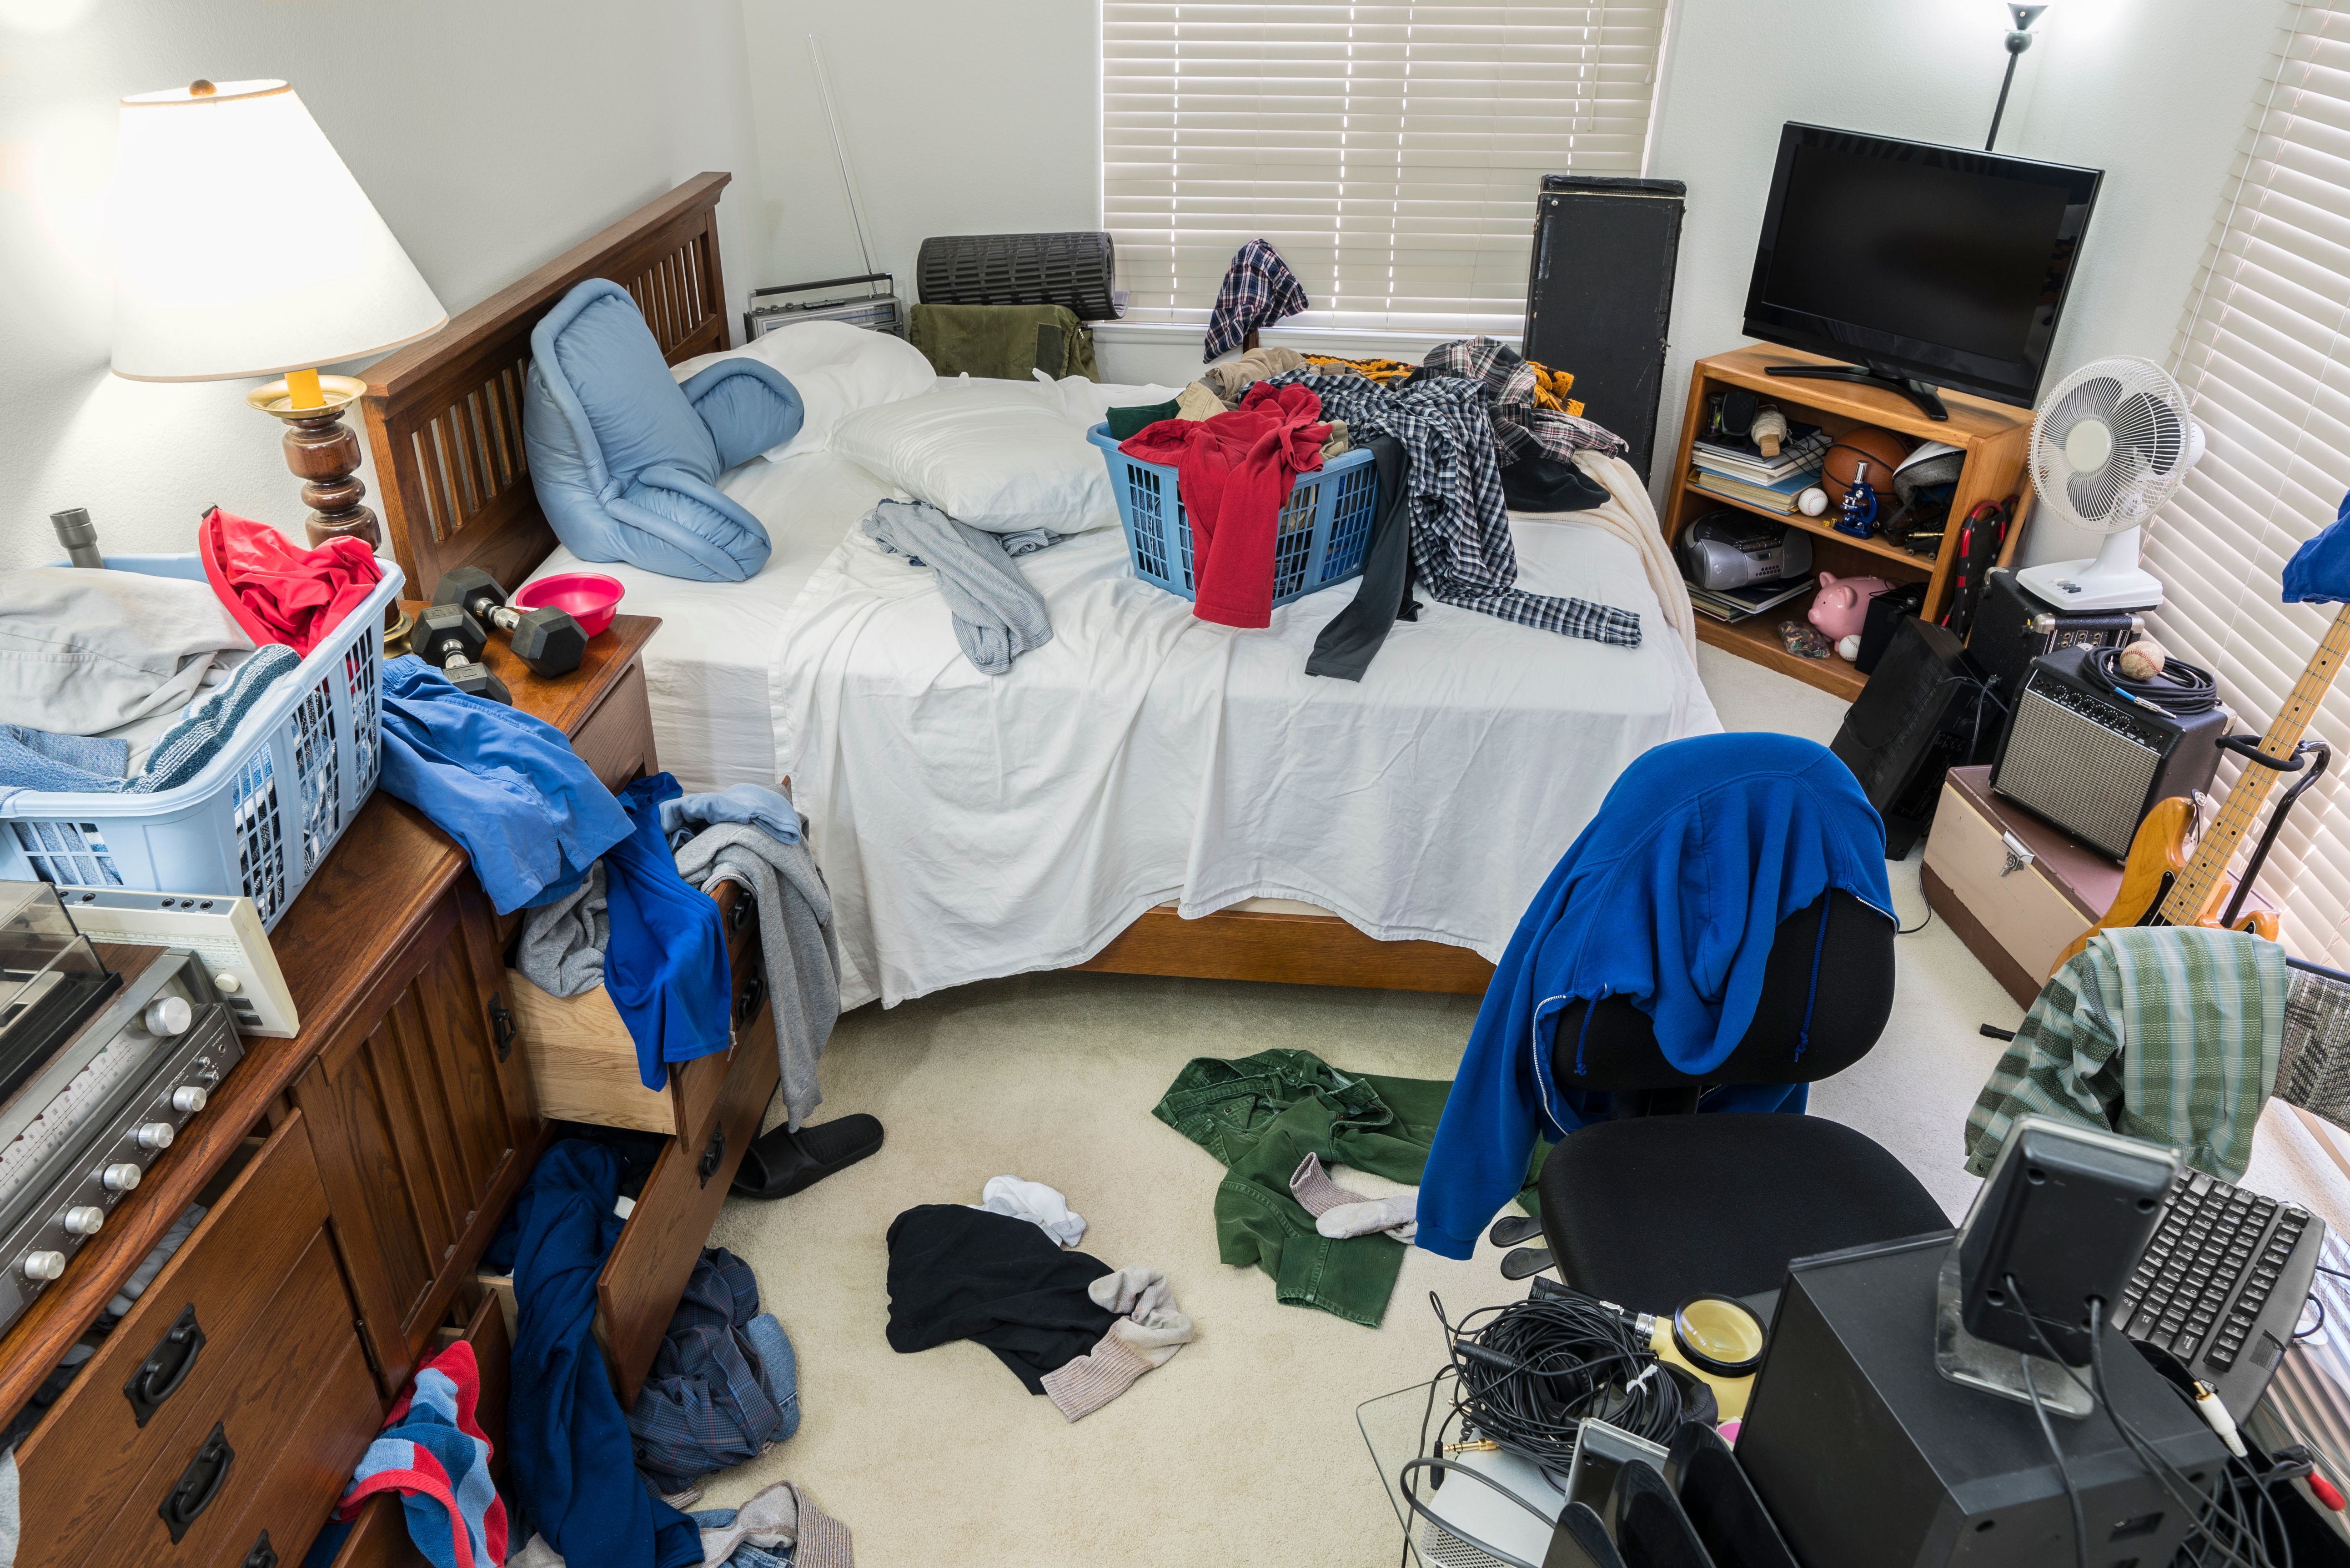 Very messy, cluttered teenage boy's bedr